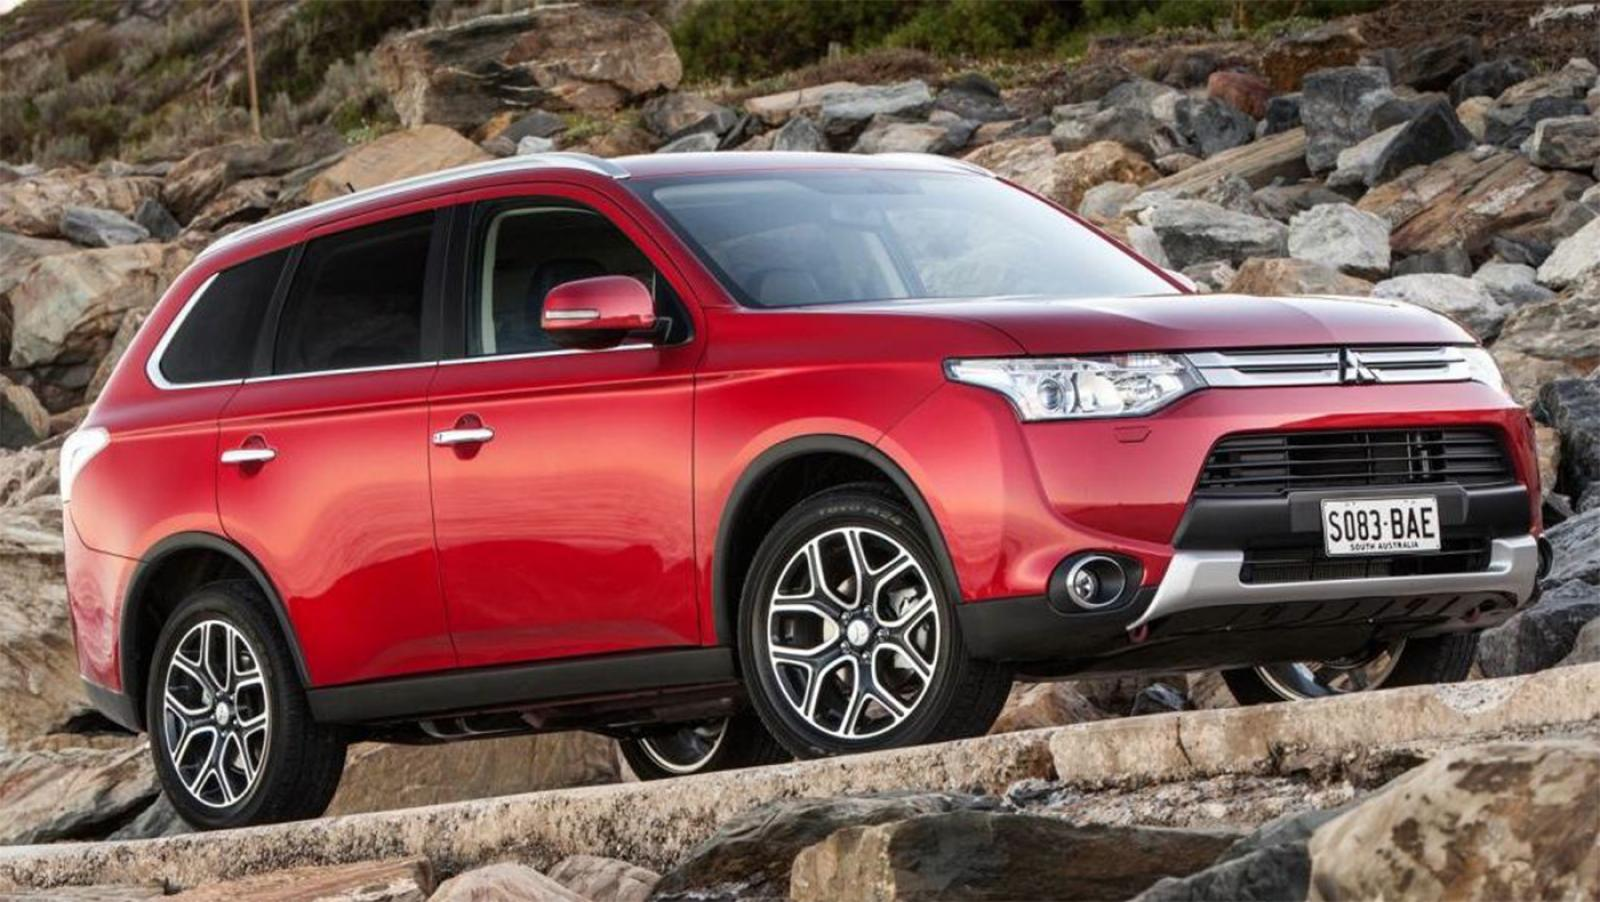 2015 Mitsubishi Outlander Information And Photos Zombiedrive 2013 Wiring Diagrams 800 1024 1280 1600 Origin